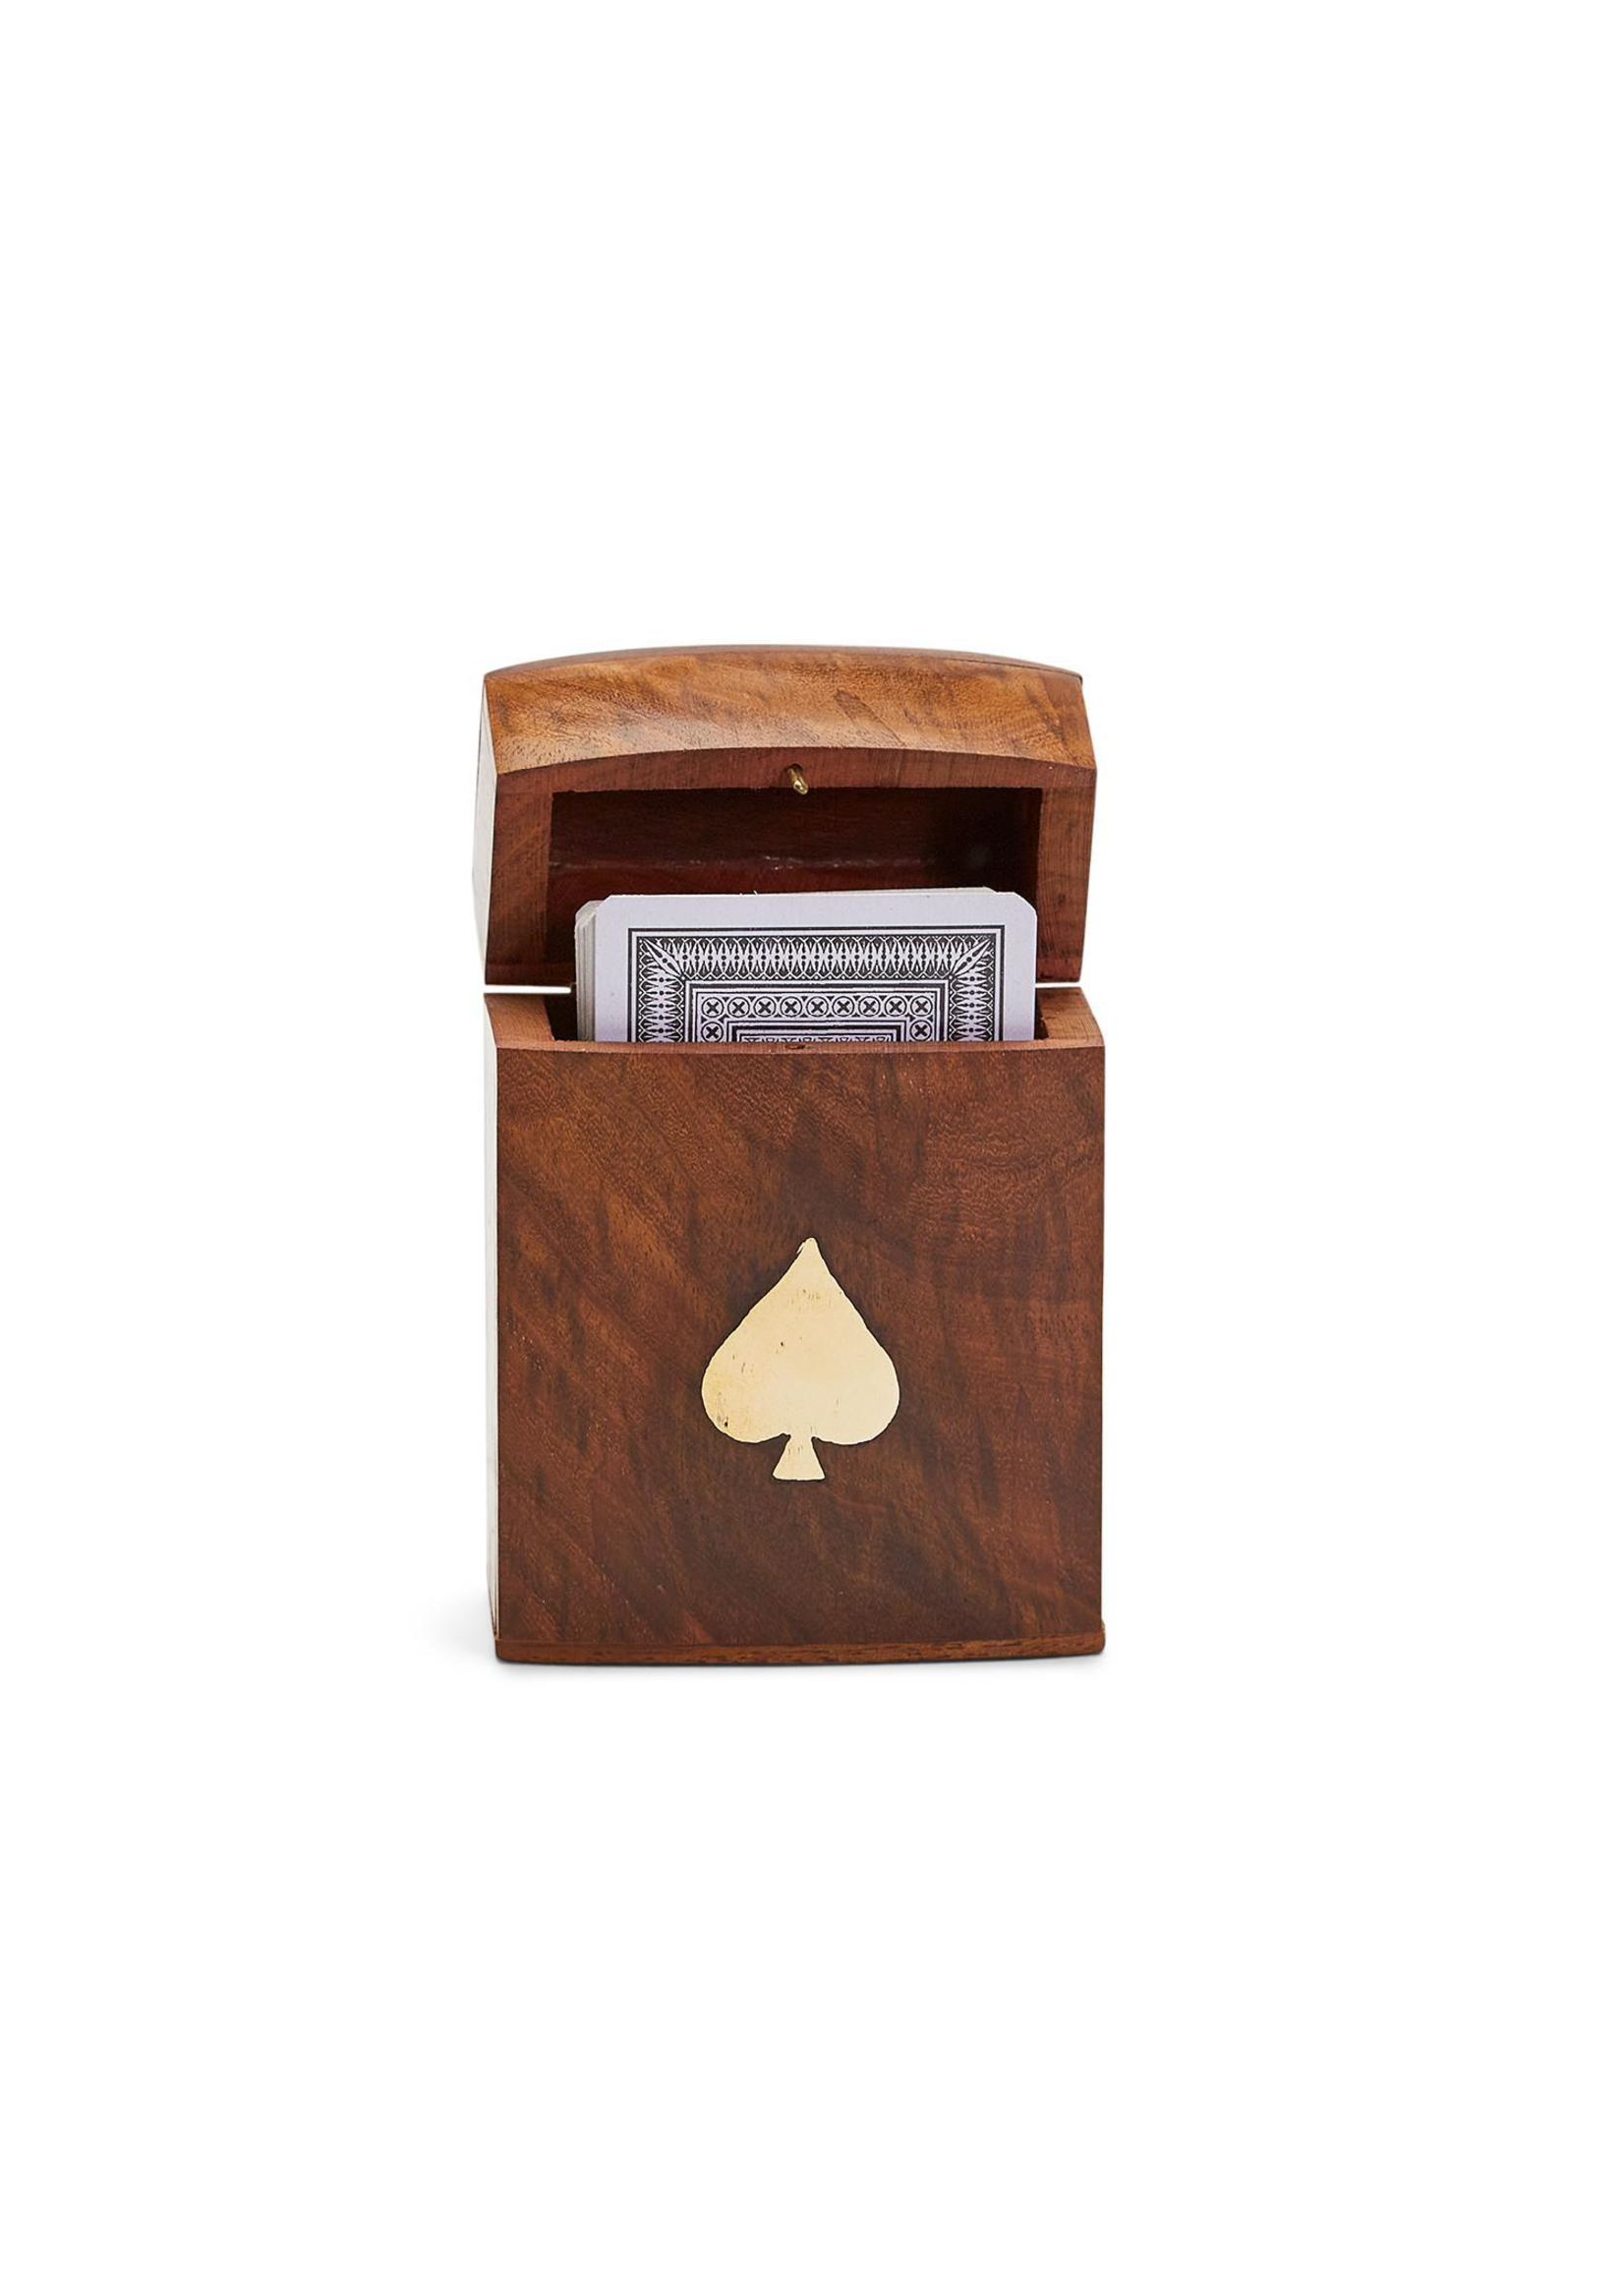 Two's Company, Inc. Wood Crafted Playing Card Set in Wooden Box